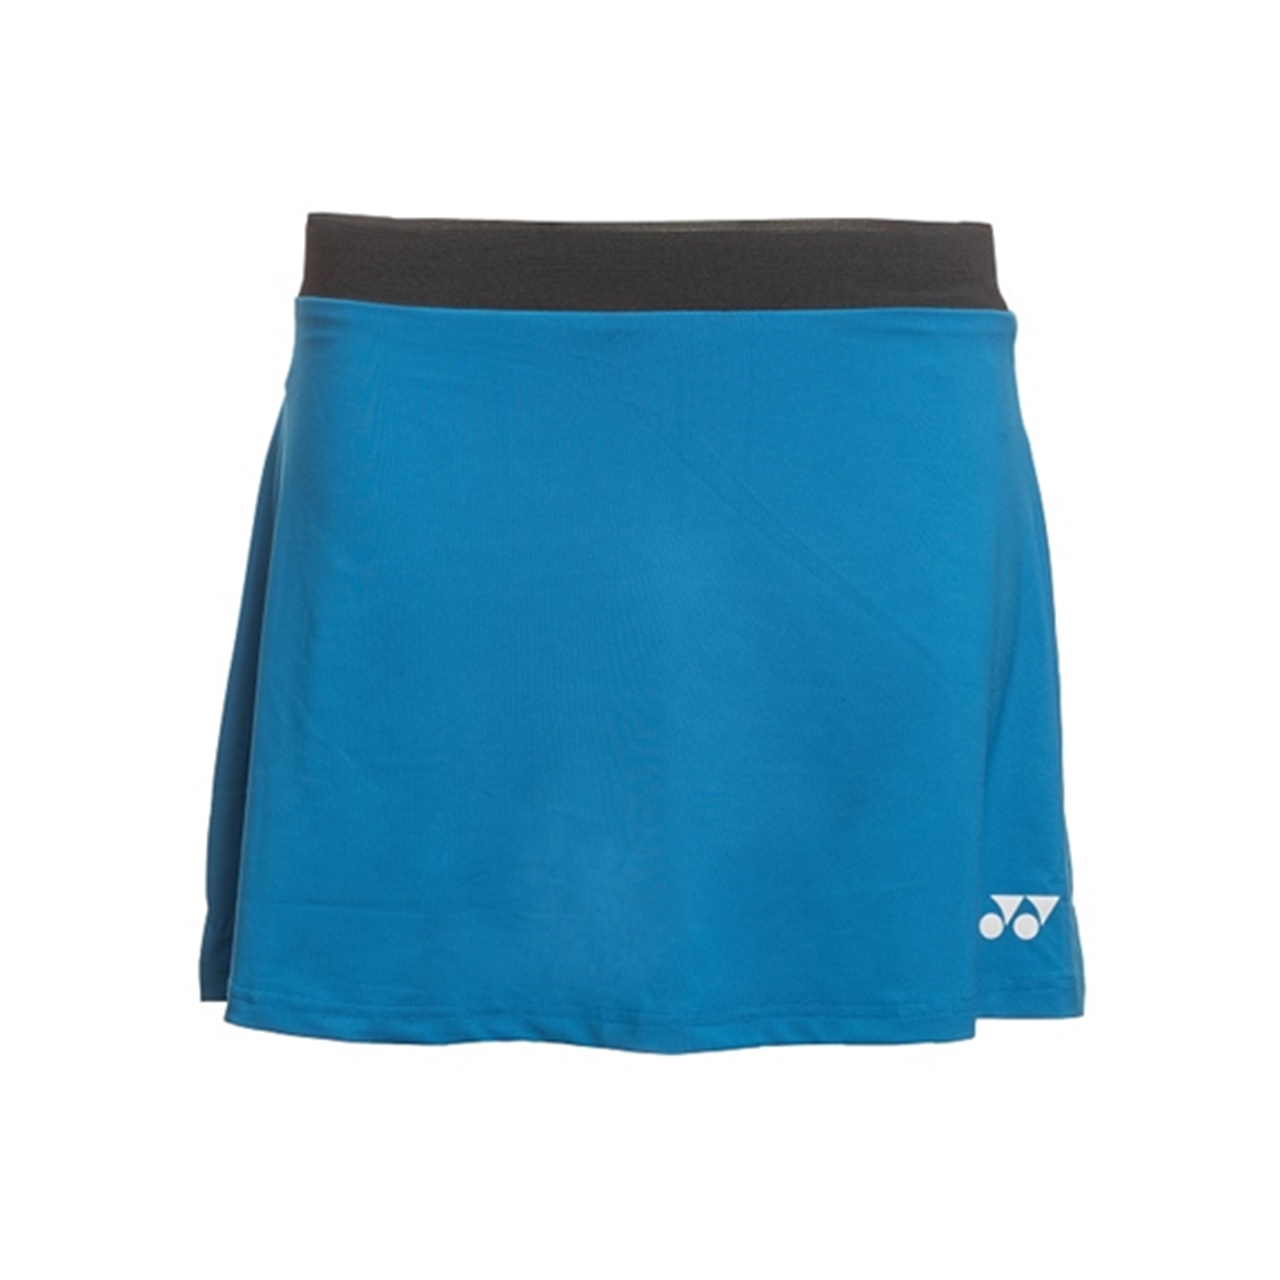 Yonex Skirt 20675 Bright Blue (with Innerpants)